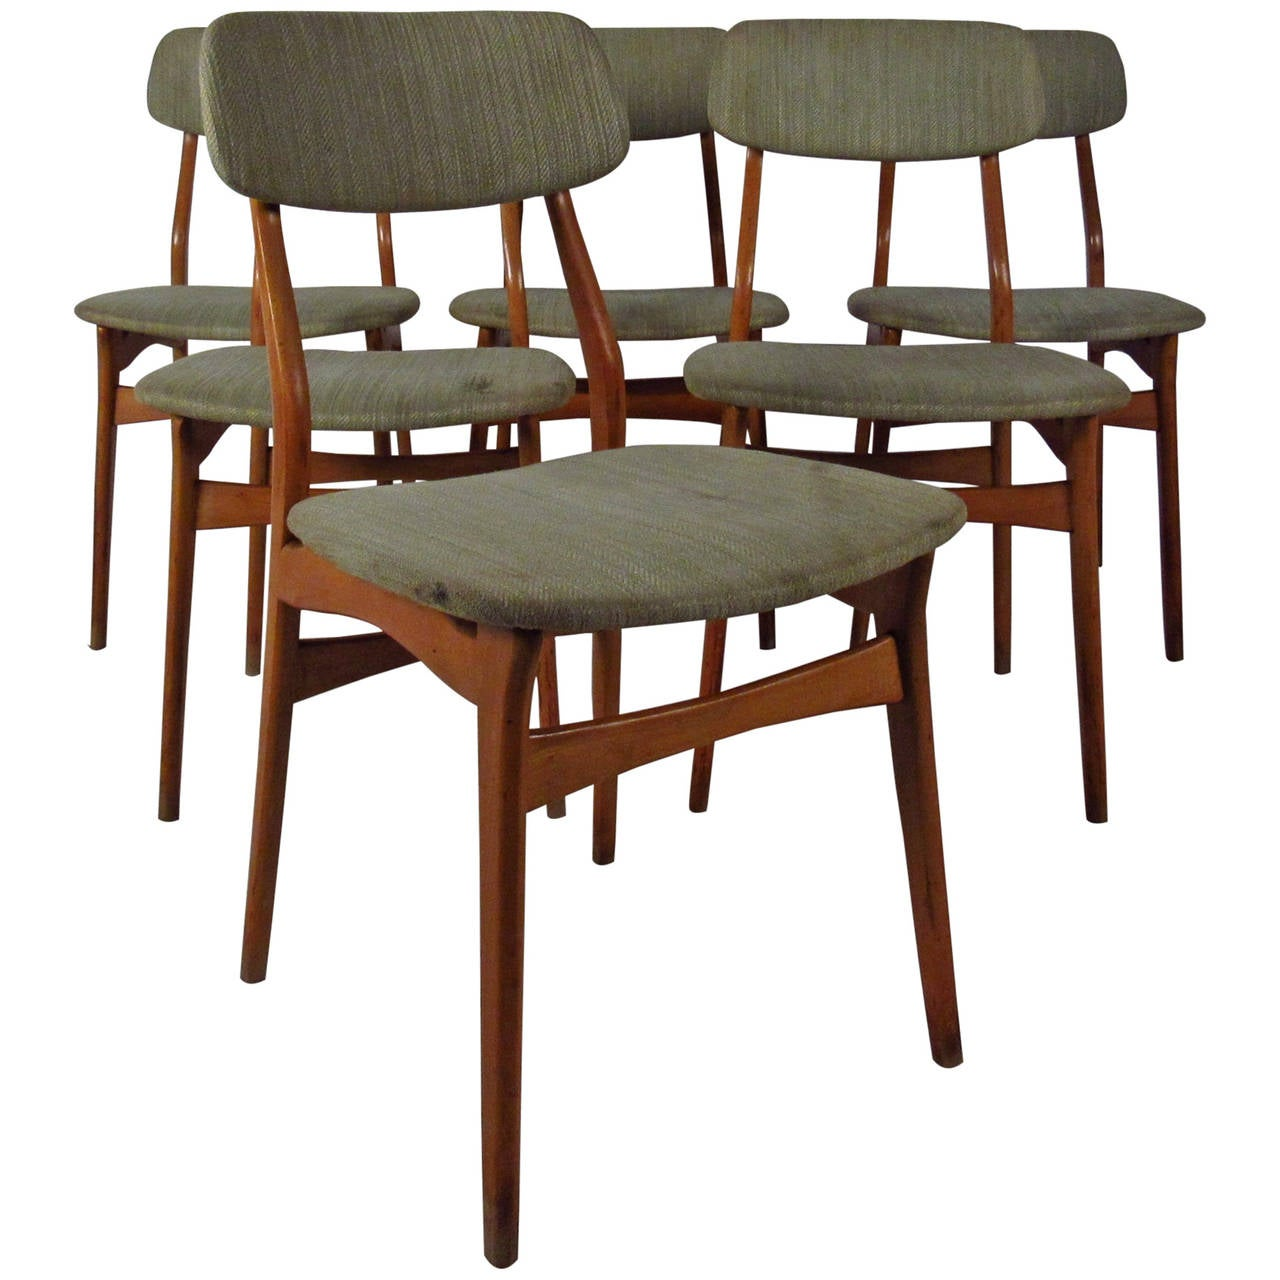 set of six mid century upholstered teak dining chairs for sale at 1stdibs. Black Bedroom Furniture Sets. Home Design Ideas